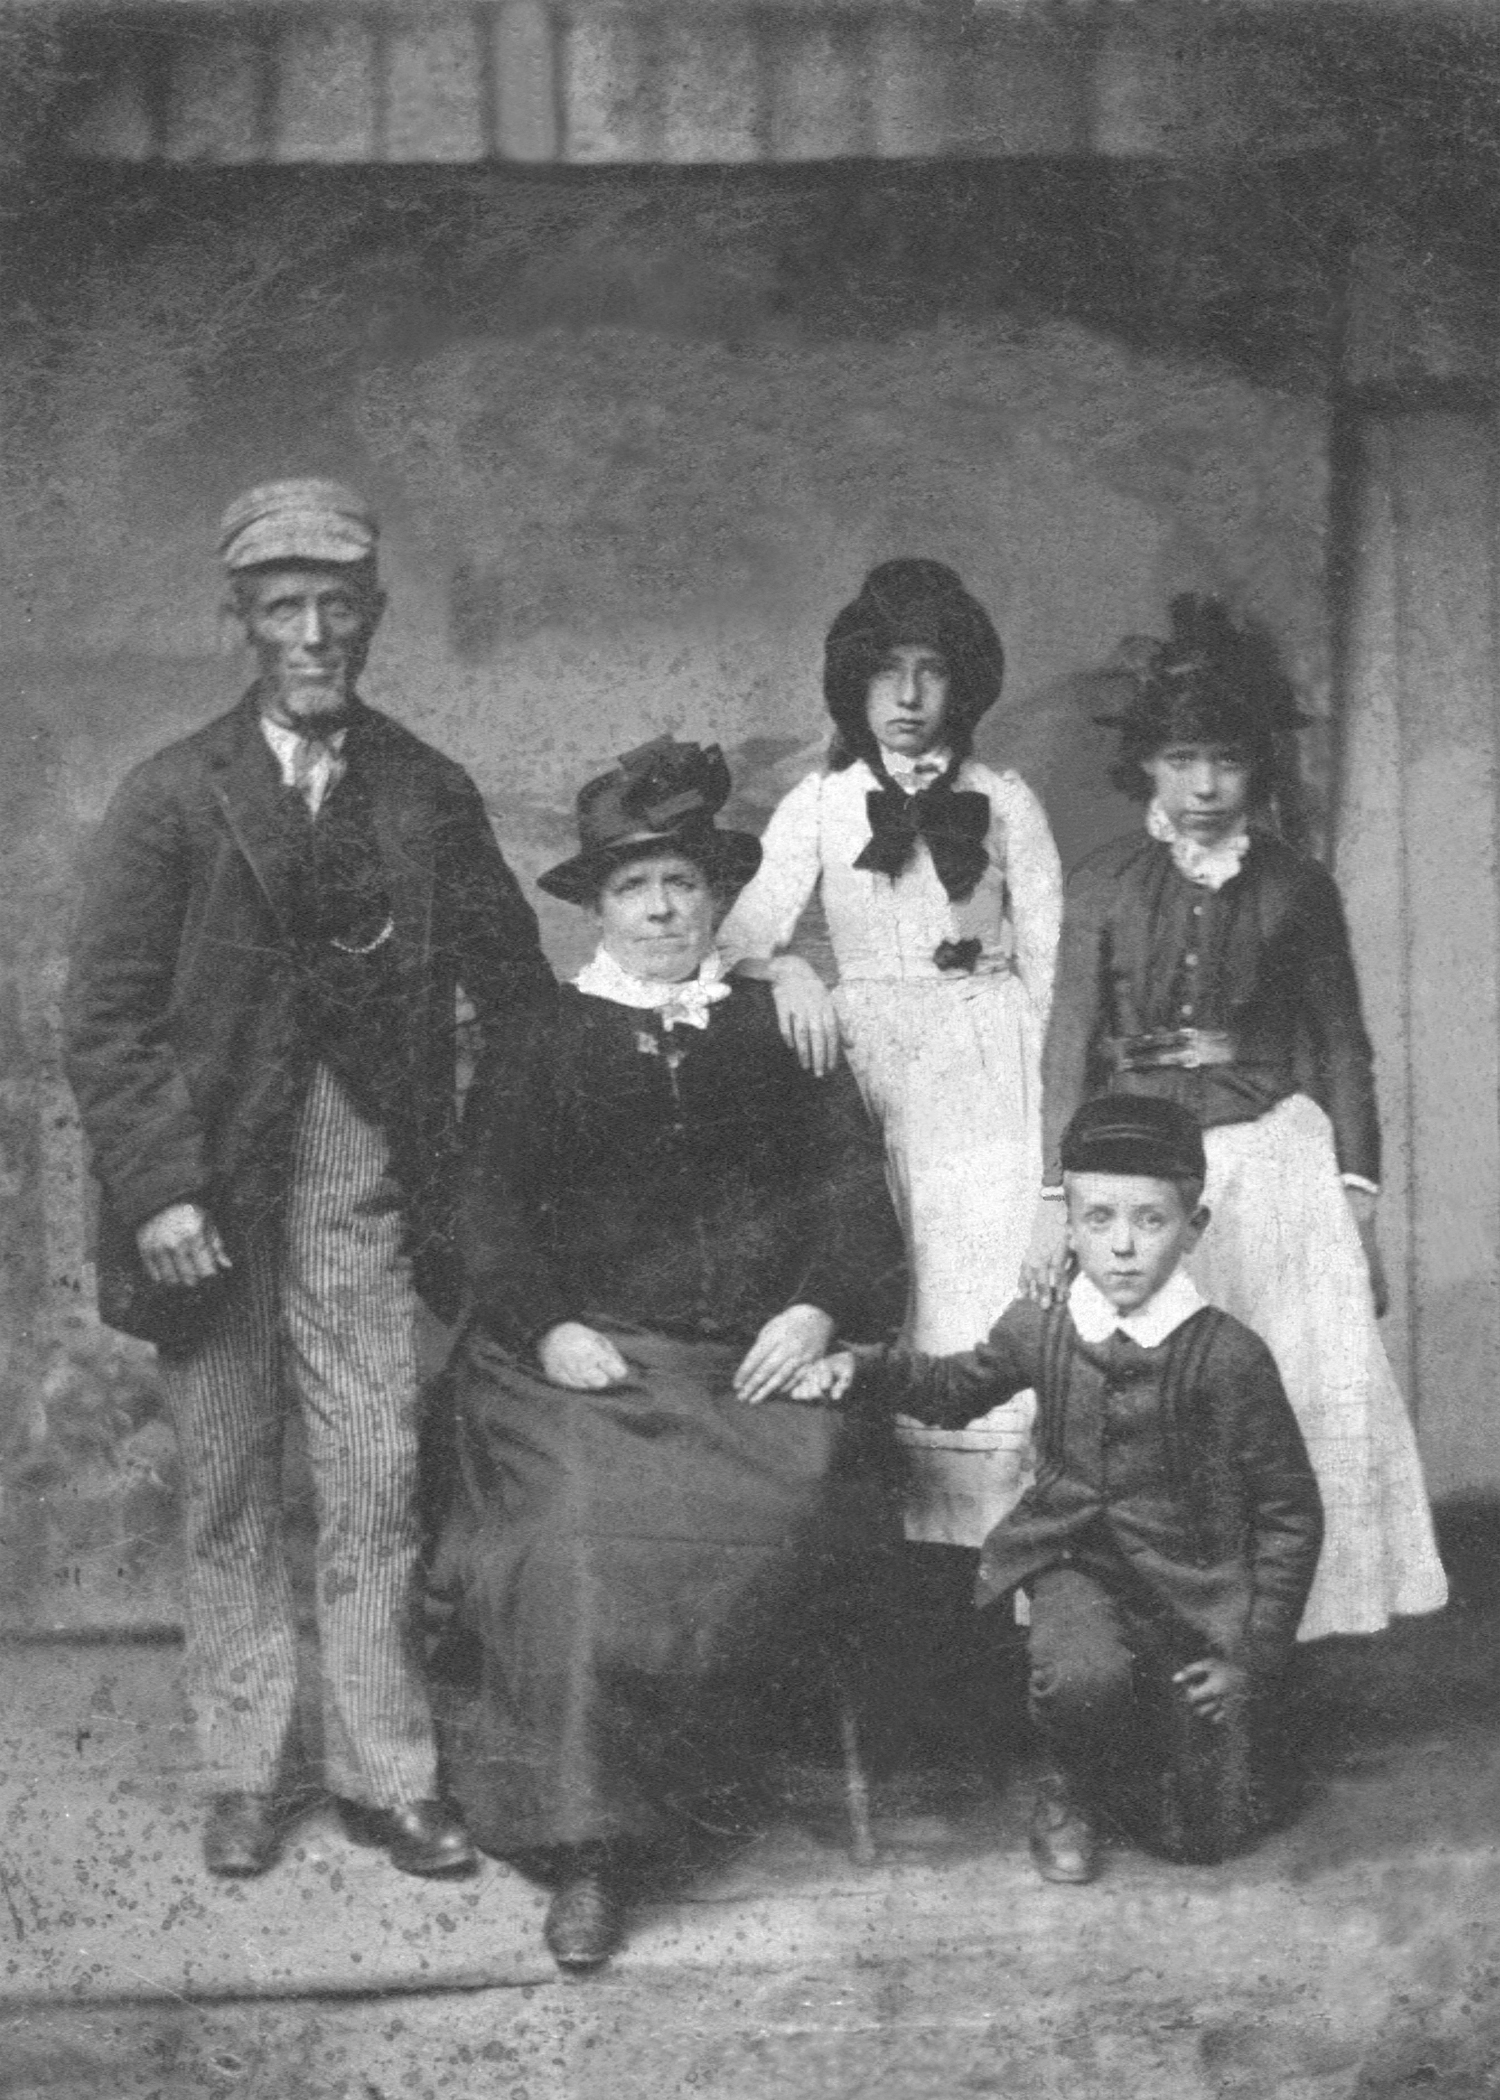 Robert and Mary Benyon, with 3 of their children?